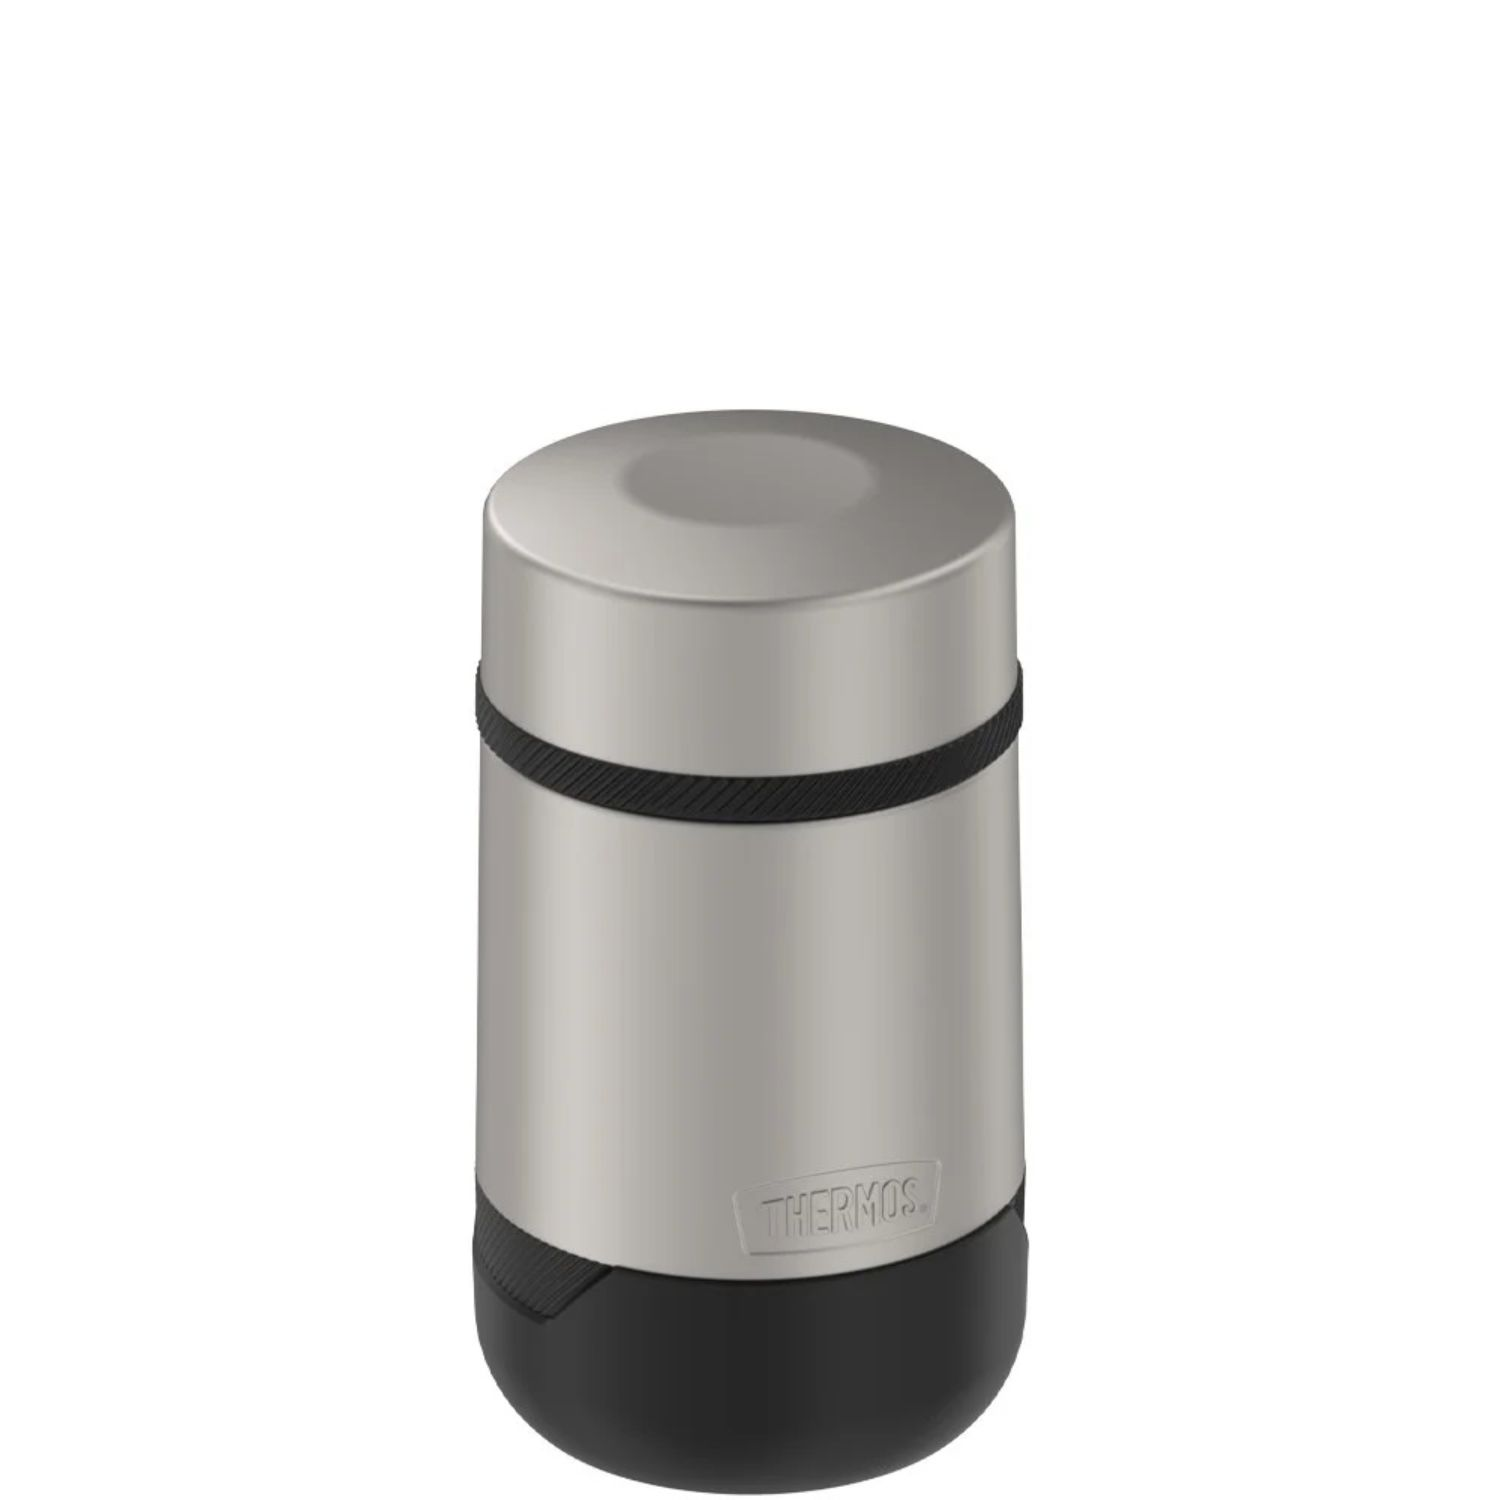 Thermos 18 oz Stainless Steel Food Jar Silver